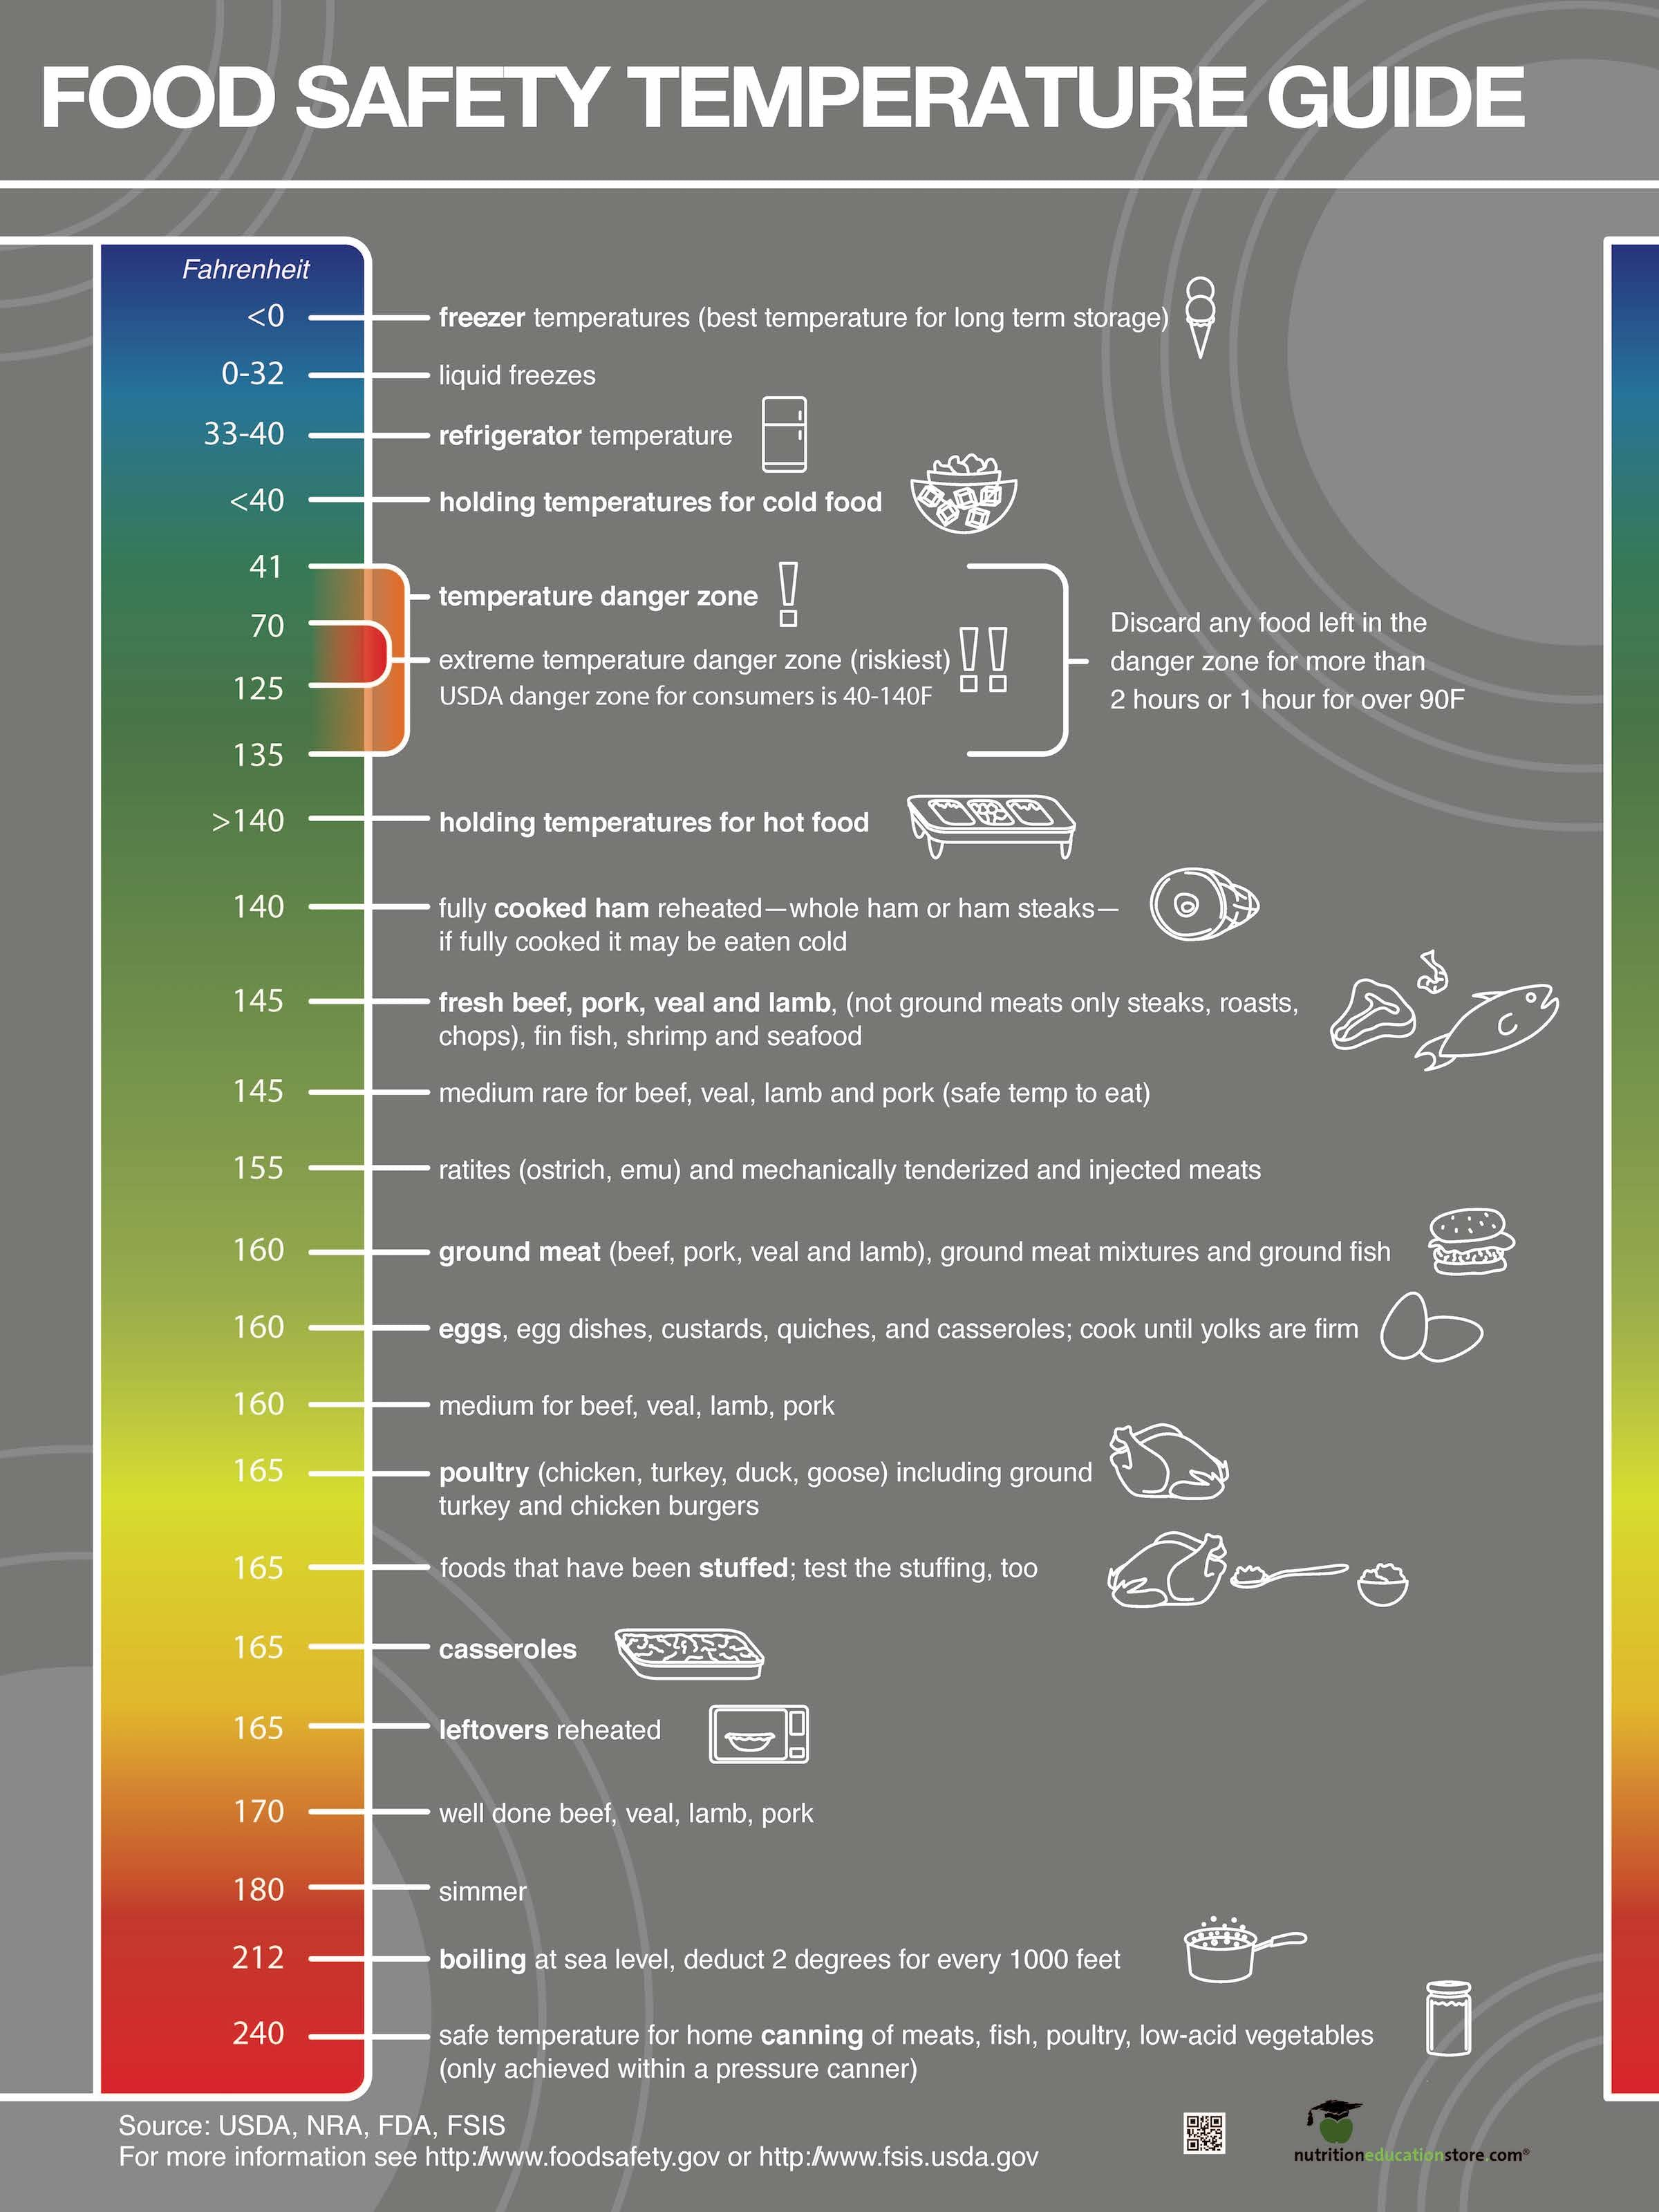 Food Safety Temperatures Poster - Nutrition Education Store